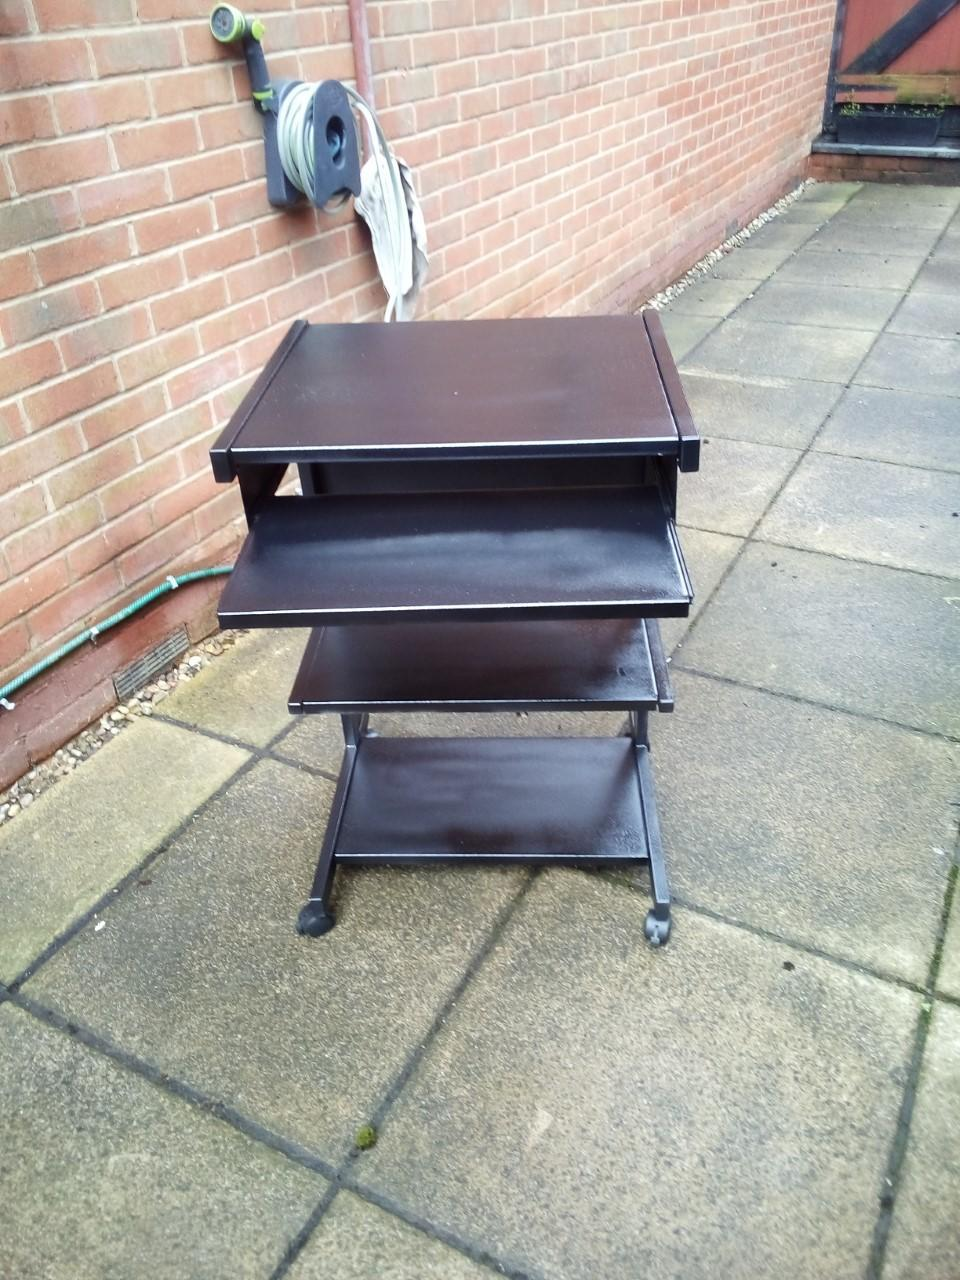 as new pc desk for sale black in color down sizing hence the